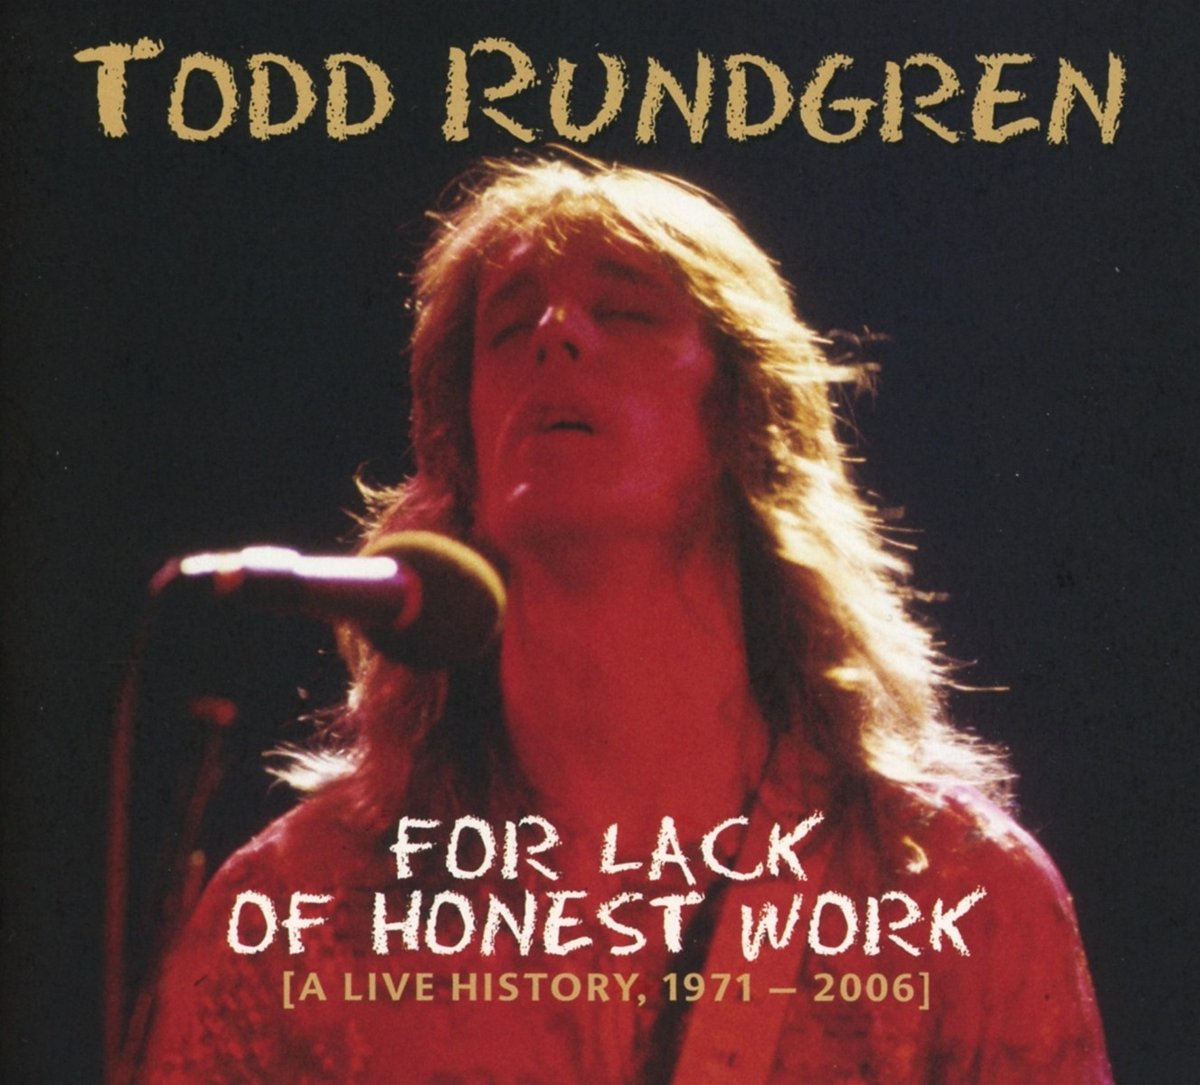 For Lack Of Honest Work [A Live History, 1971 - 2006]